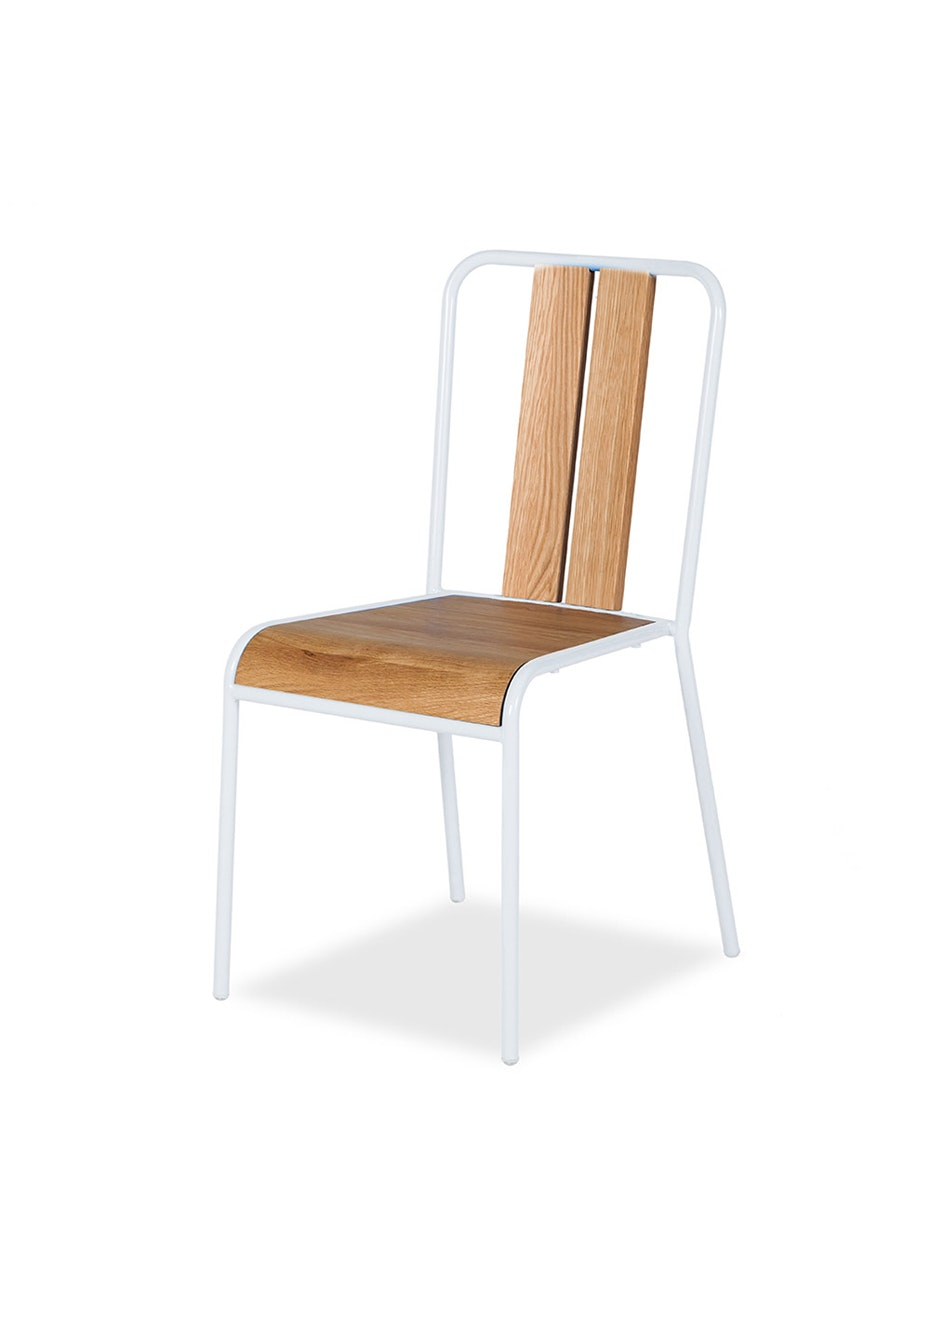 Furniture By Design - Manhattan Chair - Oak and White